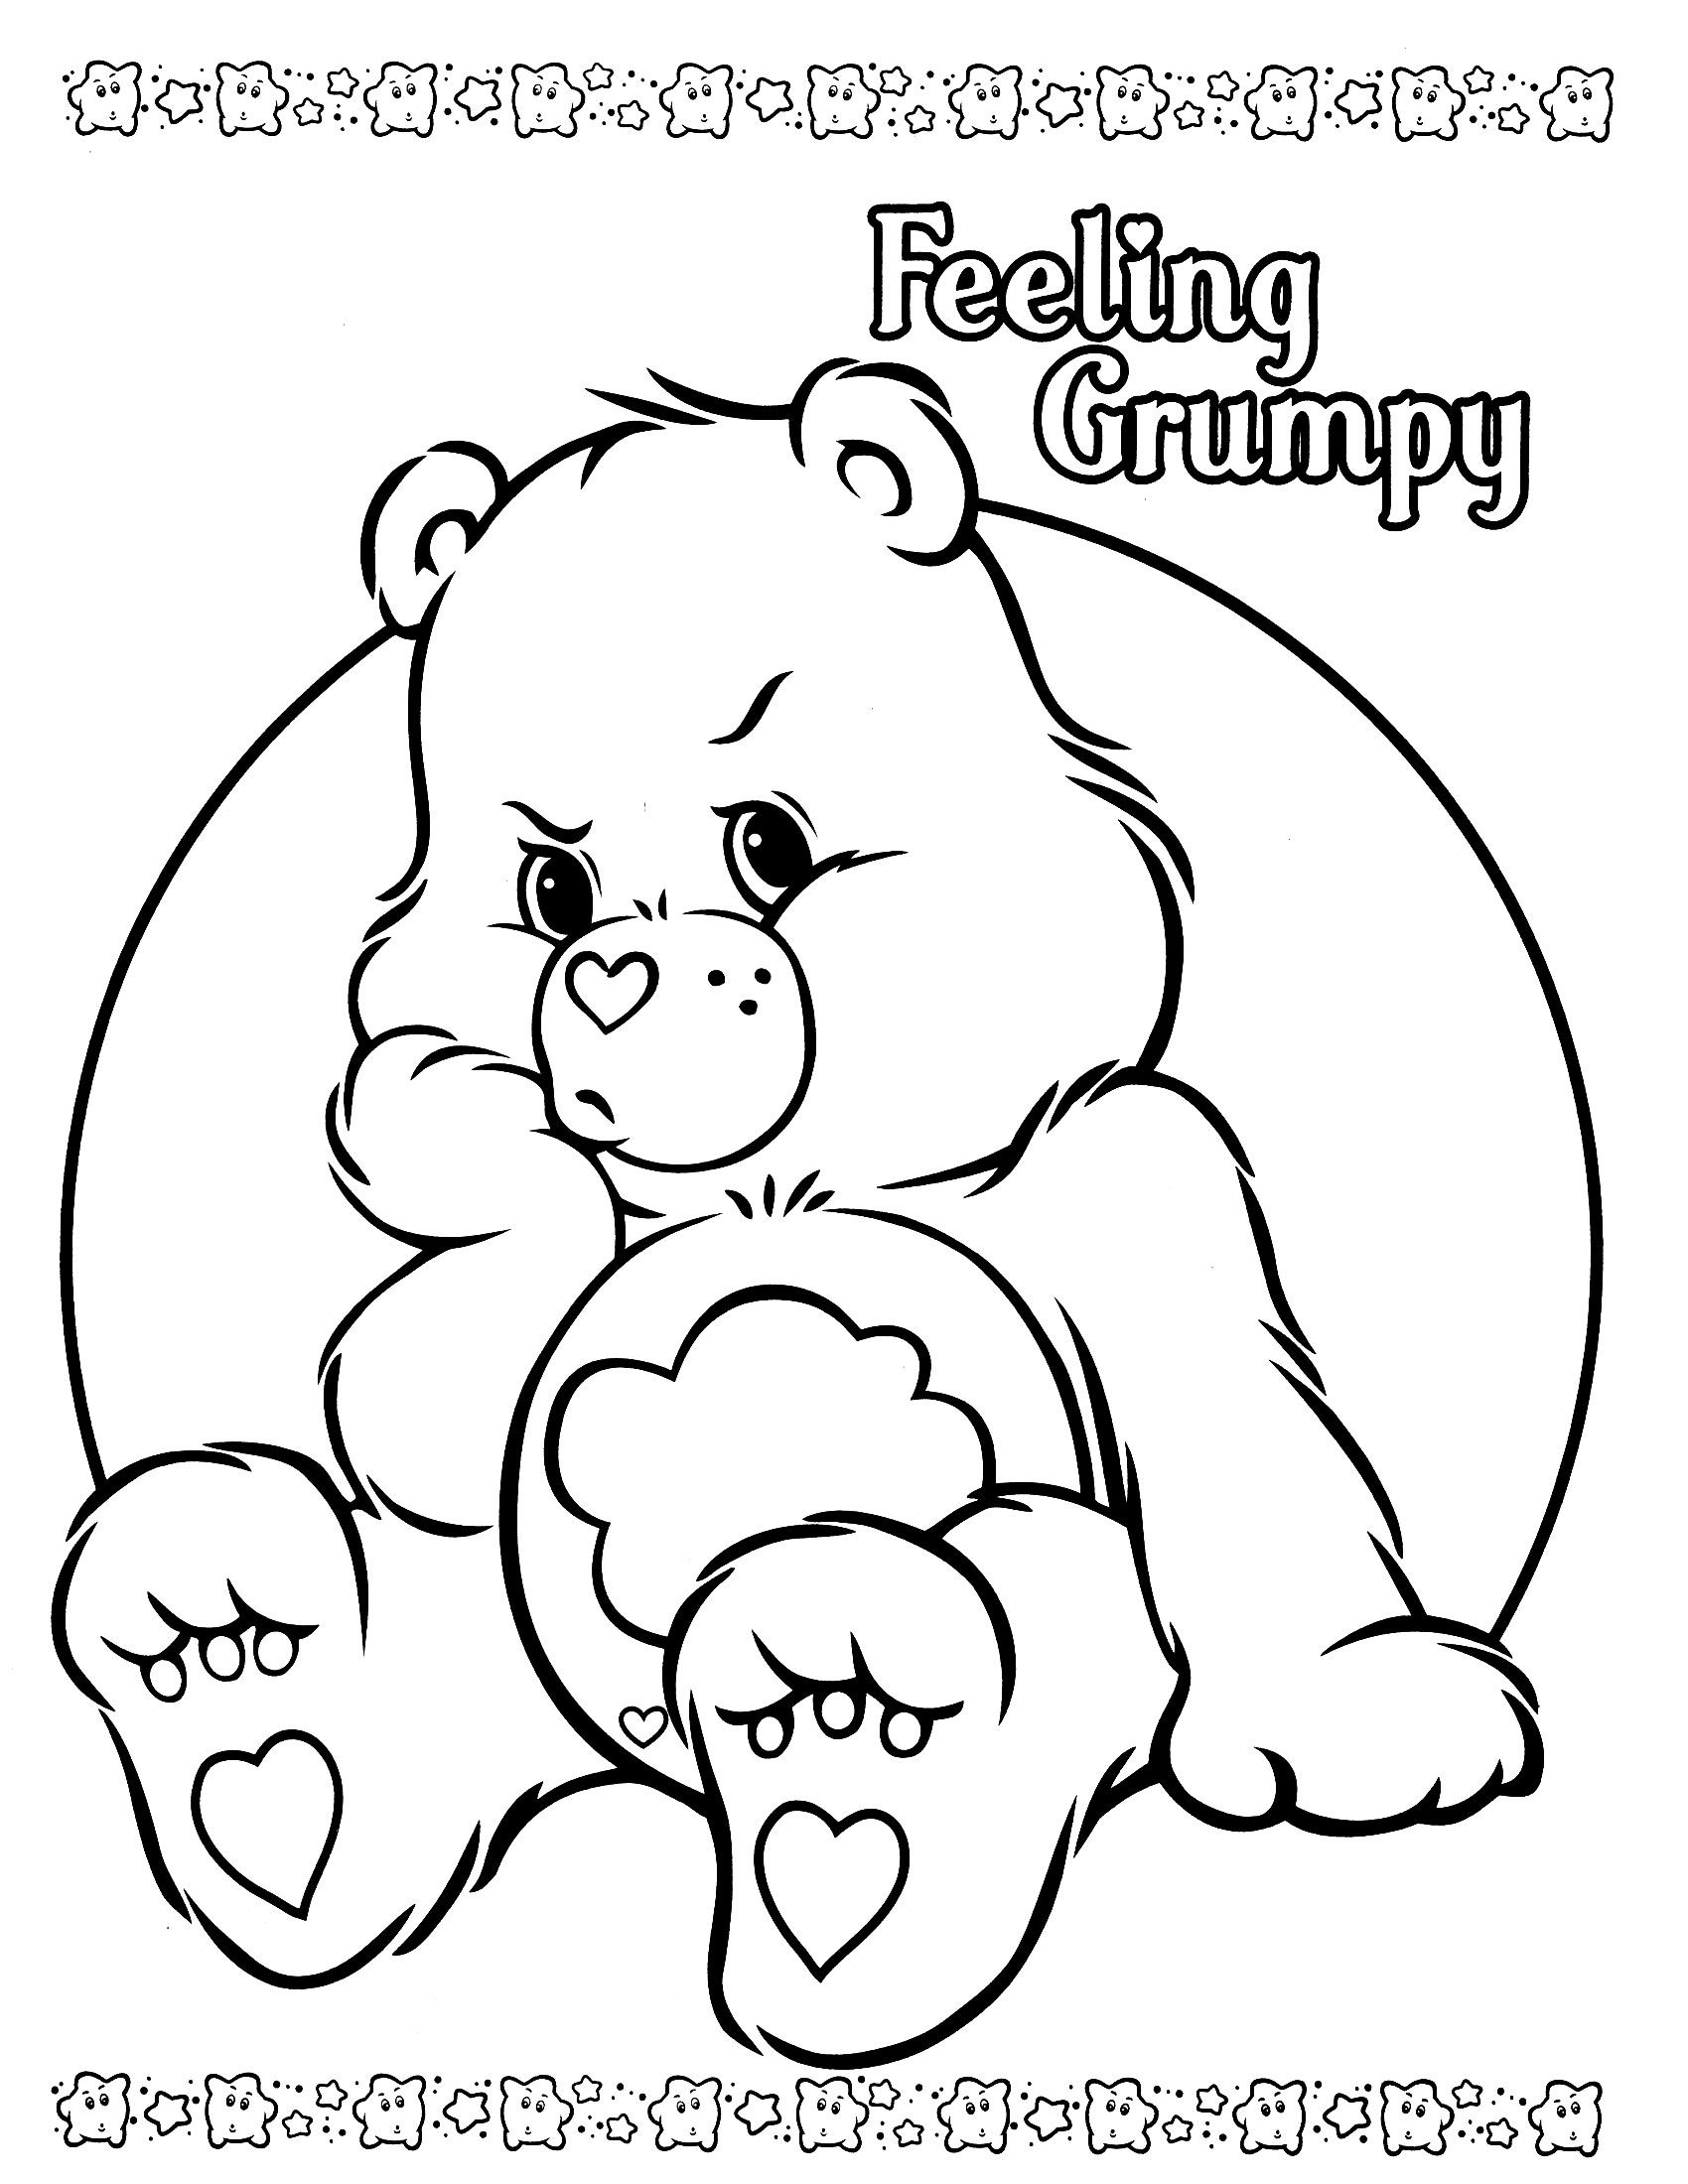 care bears coloring page Care Bears Pinterest Care bears